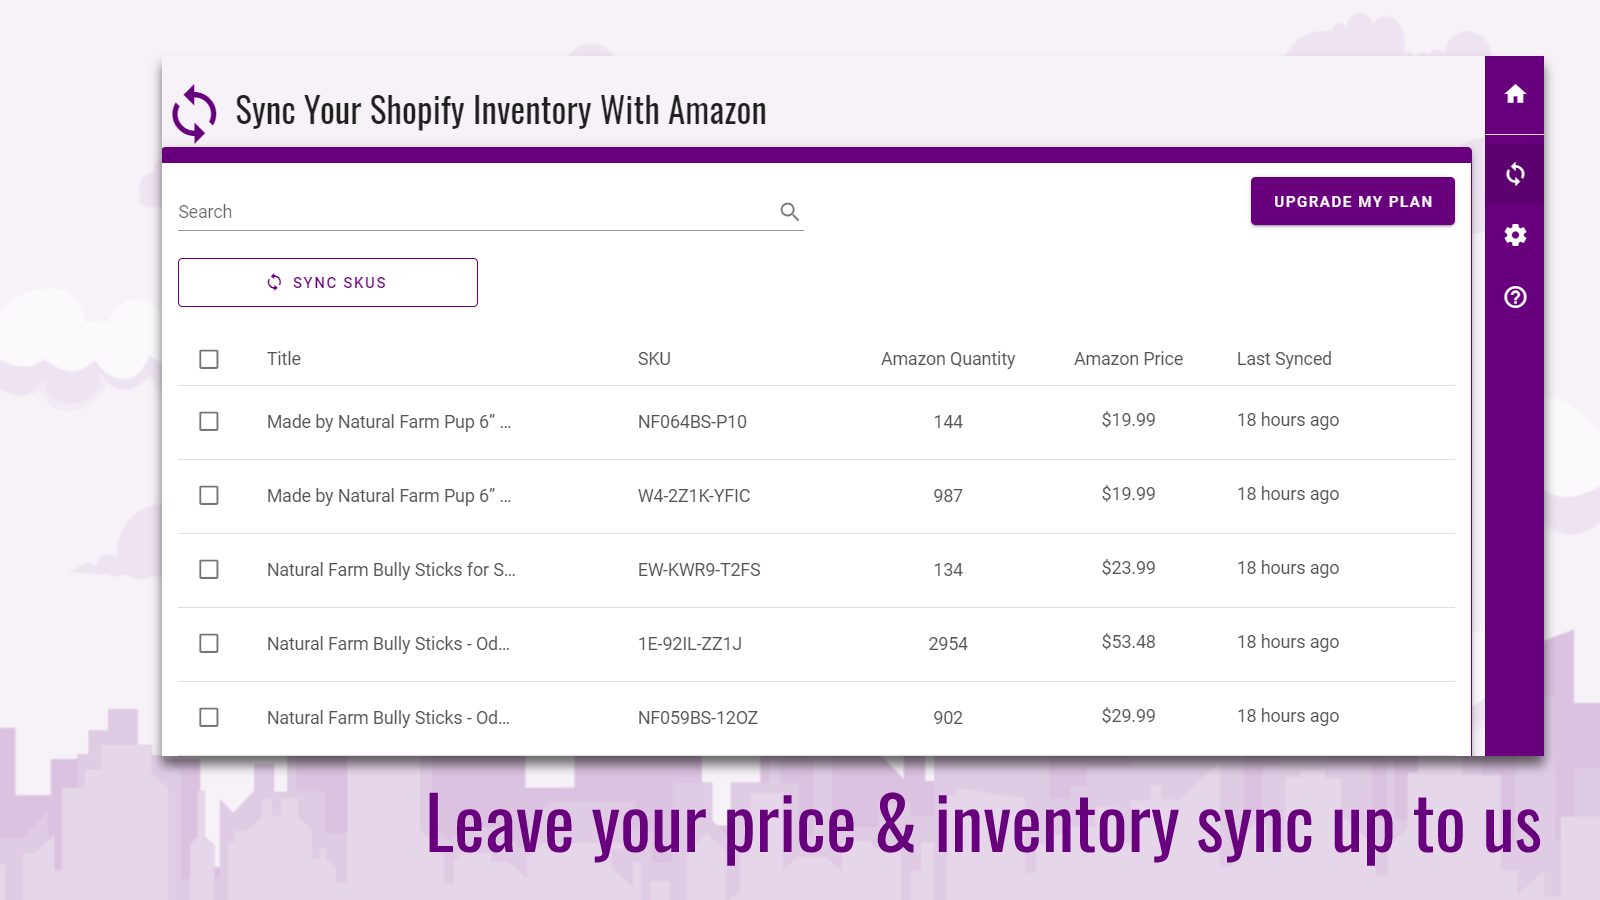 Leave your Amazon price & inventory sync in good hands